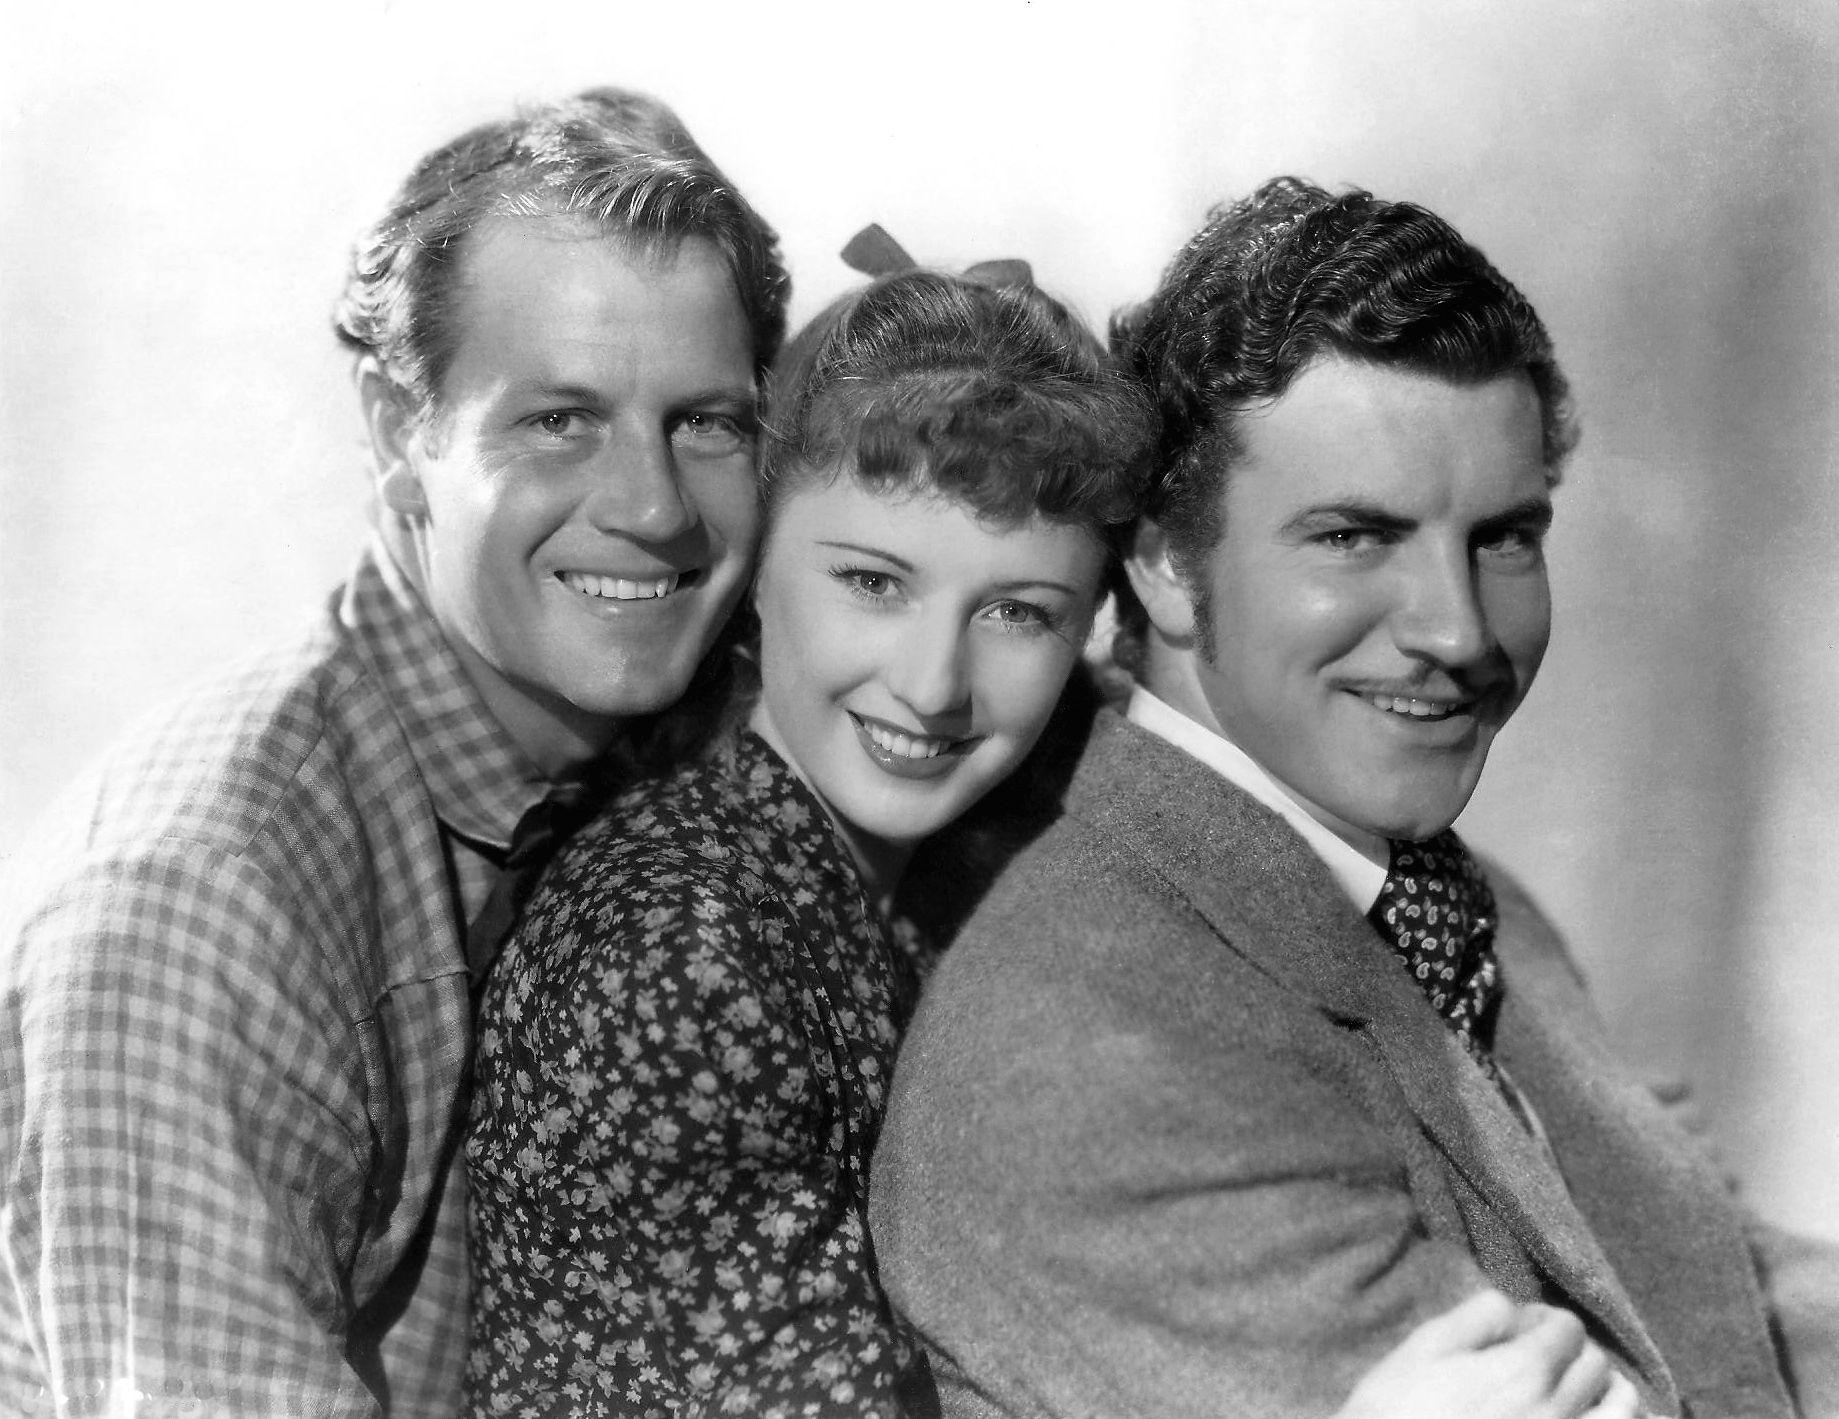 joel mccrea gayjoel mccrea actor, joel mccrea katharine hepburn, joel mccrea, joel mccrea movies youtube, joel mccrea wikipedia, фильмография joel mccrea, joel mccrea net worth, joel mccrea ranch, joel mccrea imdb, joel mccrea westerns, joel mccrea and frances dee, joel mccrea movies list, joel mccrea filmography, joel mccrea western movies on youtube, joel mccrea gay, joel mccrea and frances dee photos, joel mccrea youtube